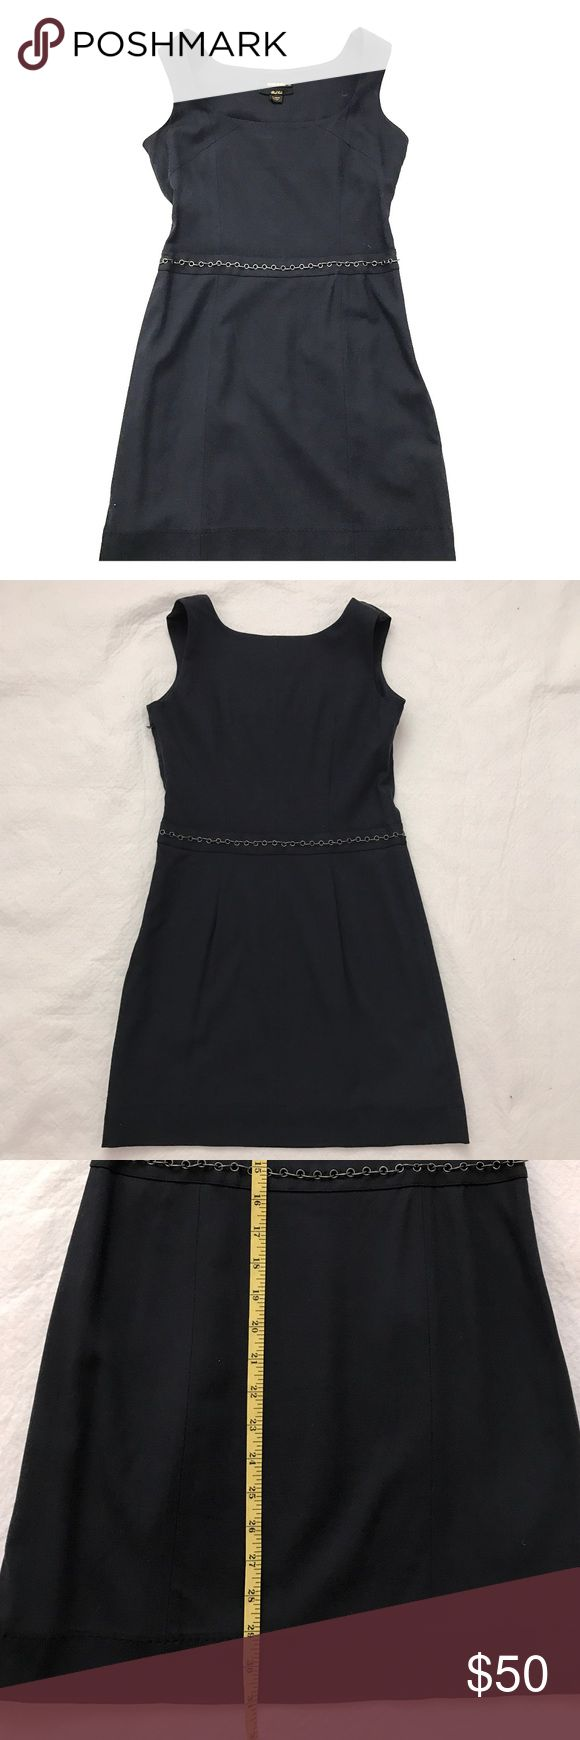 "Diesel Black Gold Dress Length 31"". Navy color. Never worn Dress. Diesel Black Gold Dresses Mini"